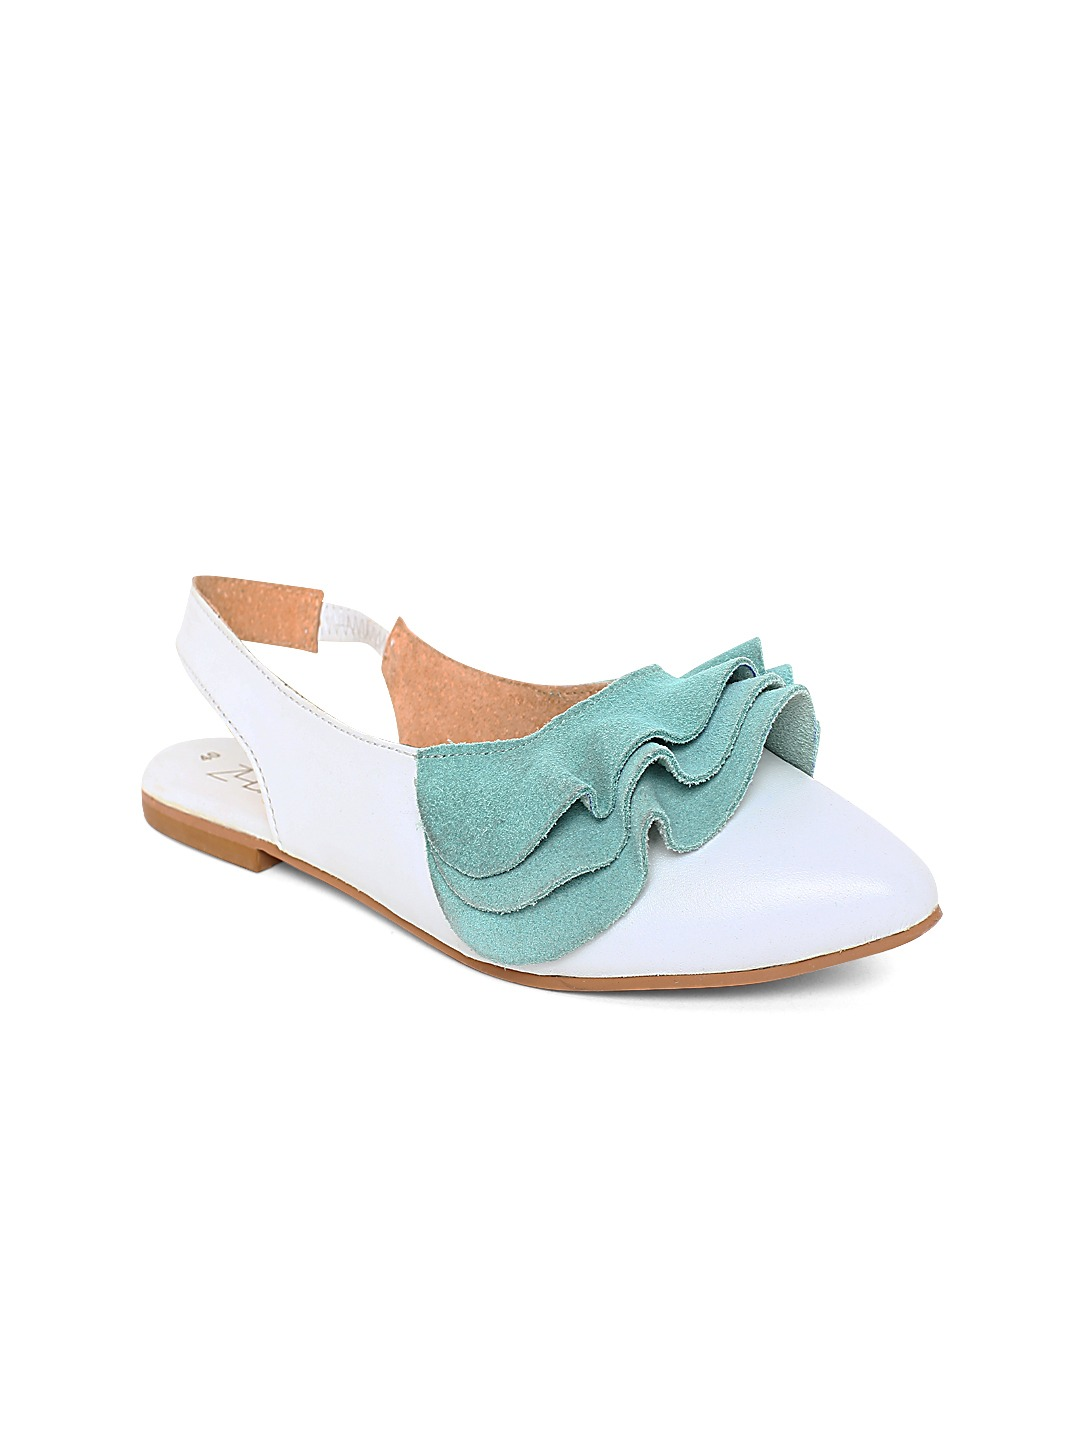 White & Green Colourblocked Leather Flats